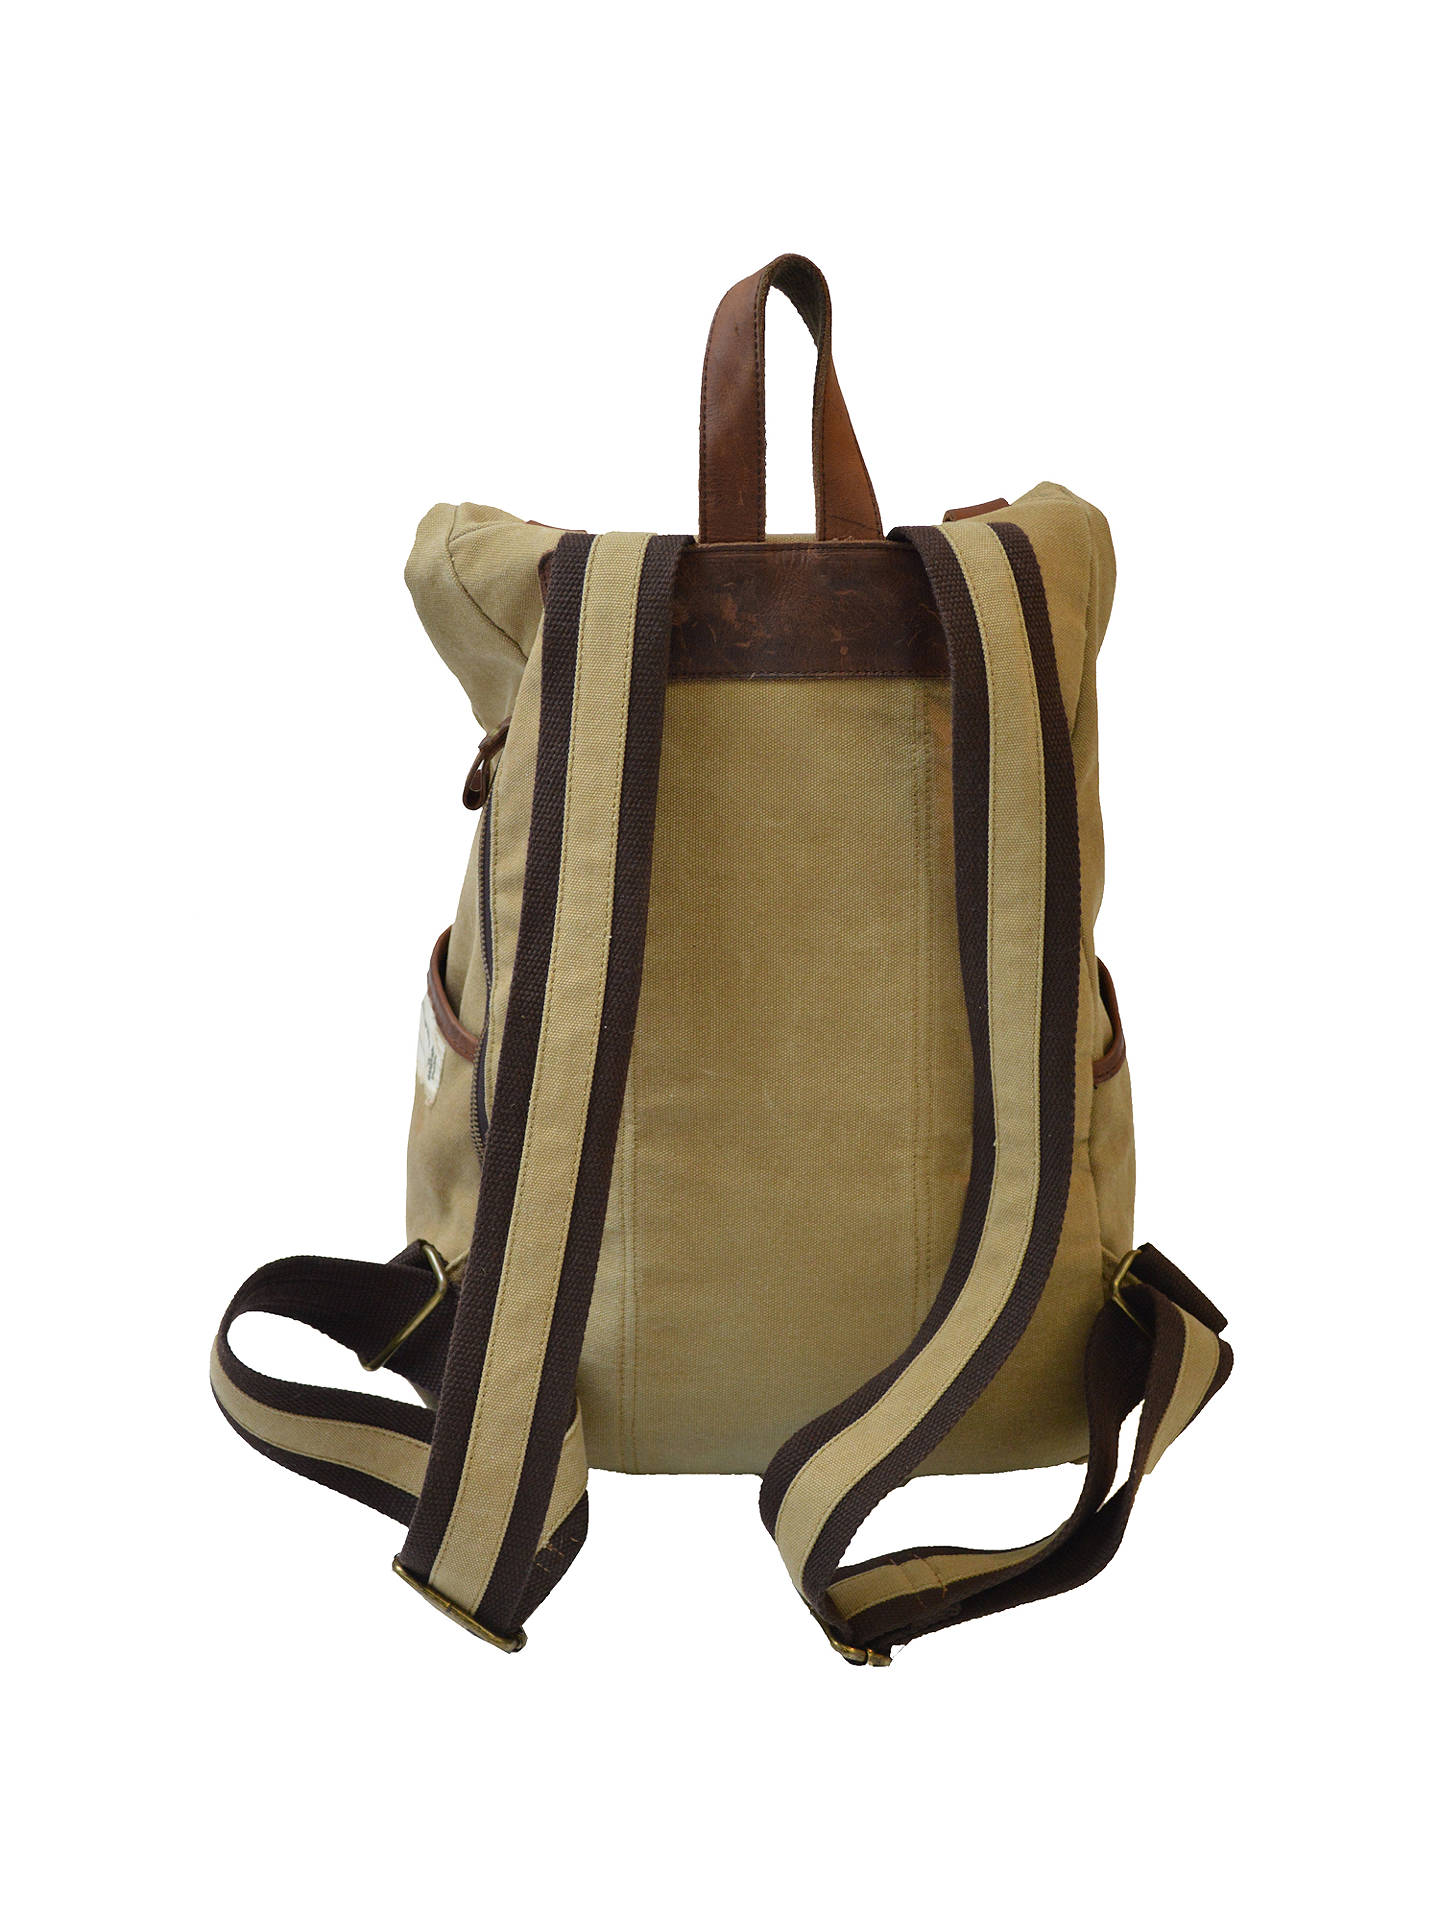 ... BuyGandys Bali Authentic Voyager Backpack, Beige Online at  johnlewis.com ... 74b11da48d